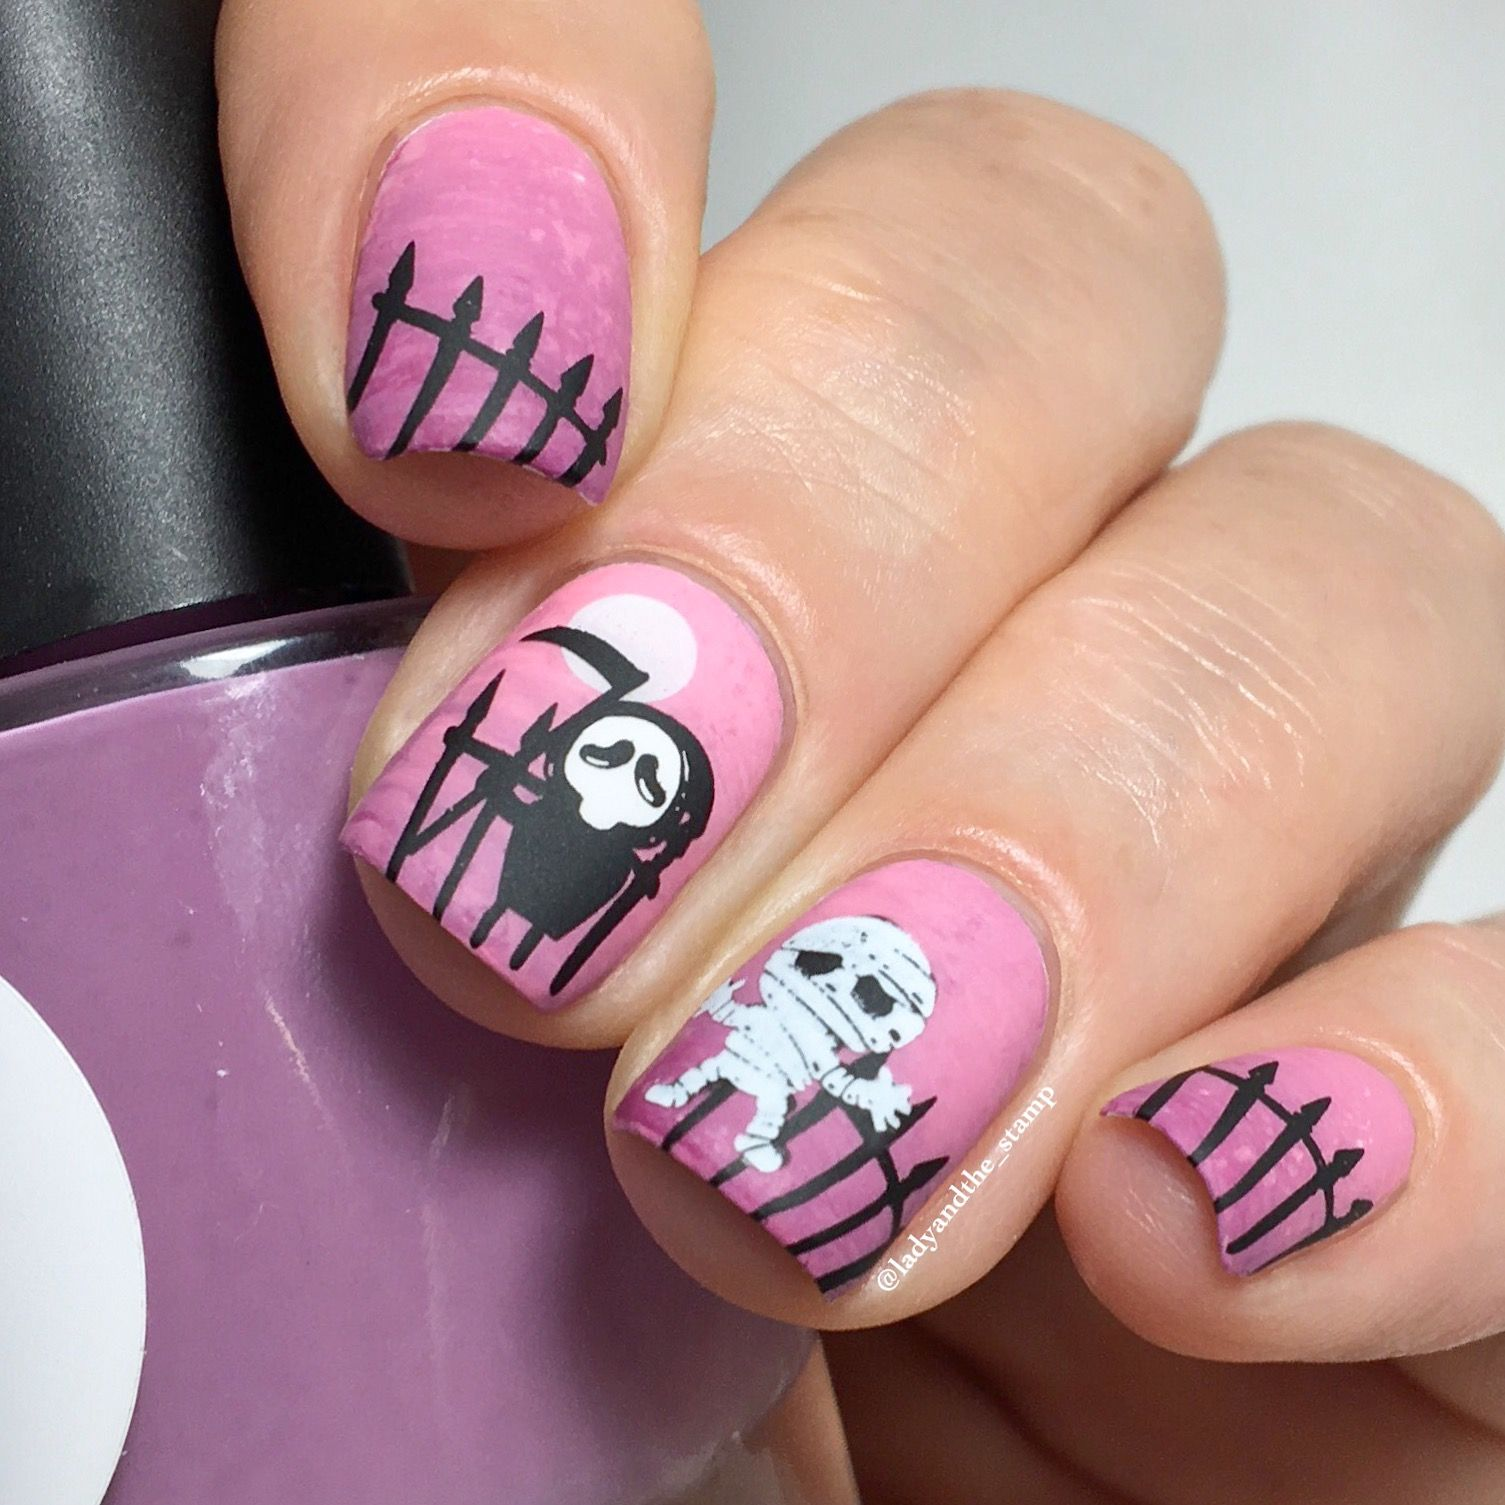 Pin by Francesca Price on Nails | Halloween nails easy ...